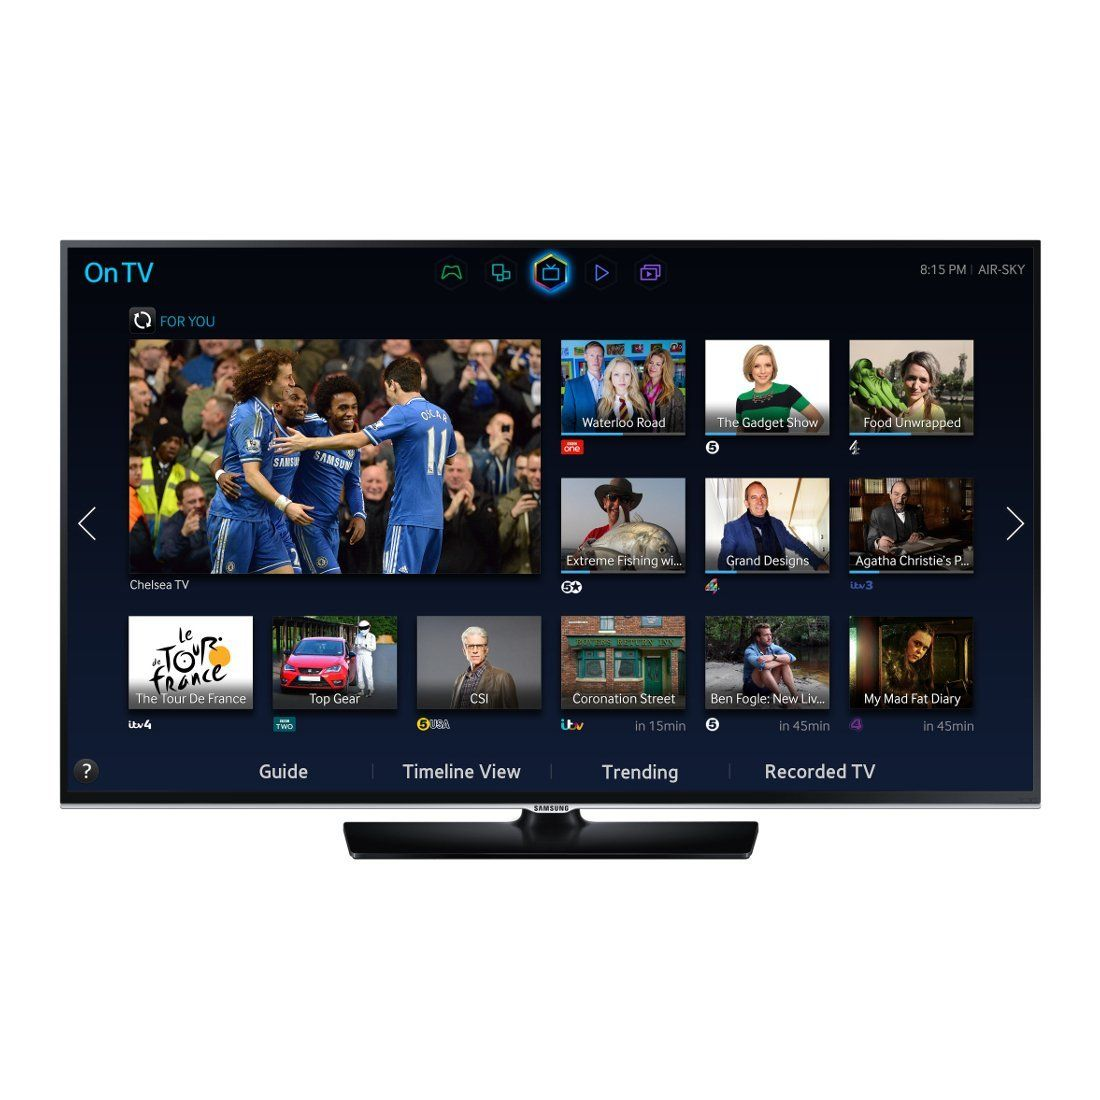 be2fa9c82dc BARGAIN Samsung UE32H5500 32-inch Widescreen Full HD Smart LED TV NOW £249  At Amazon - Gratisfaction UK Bargains #samsung